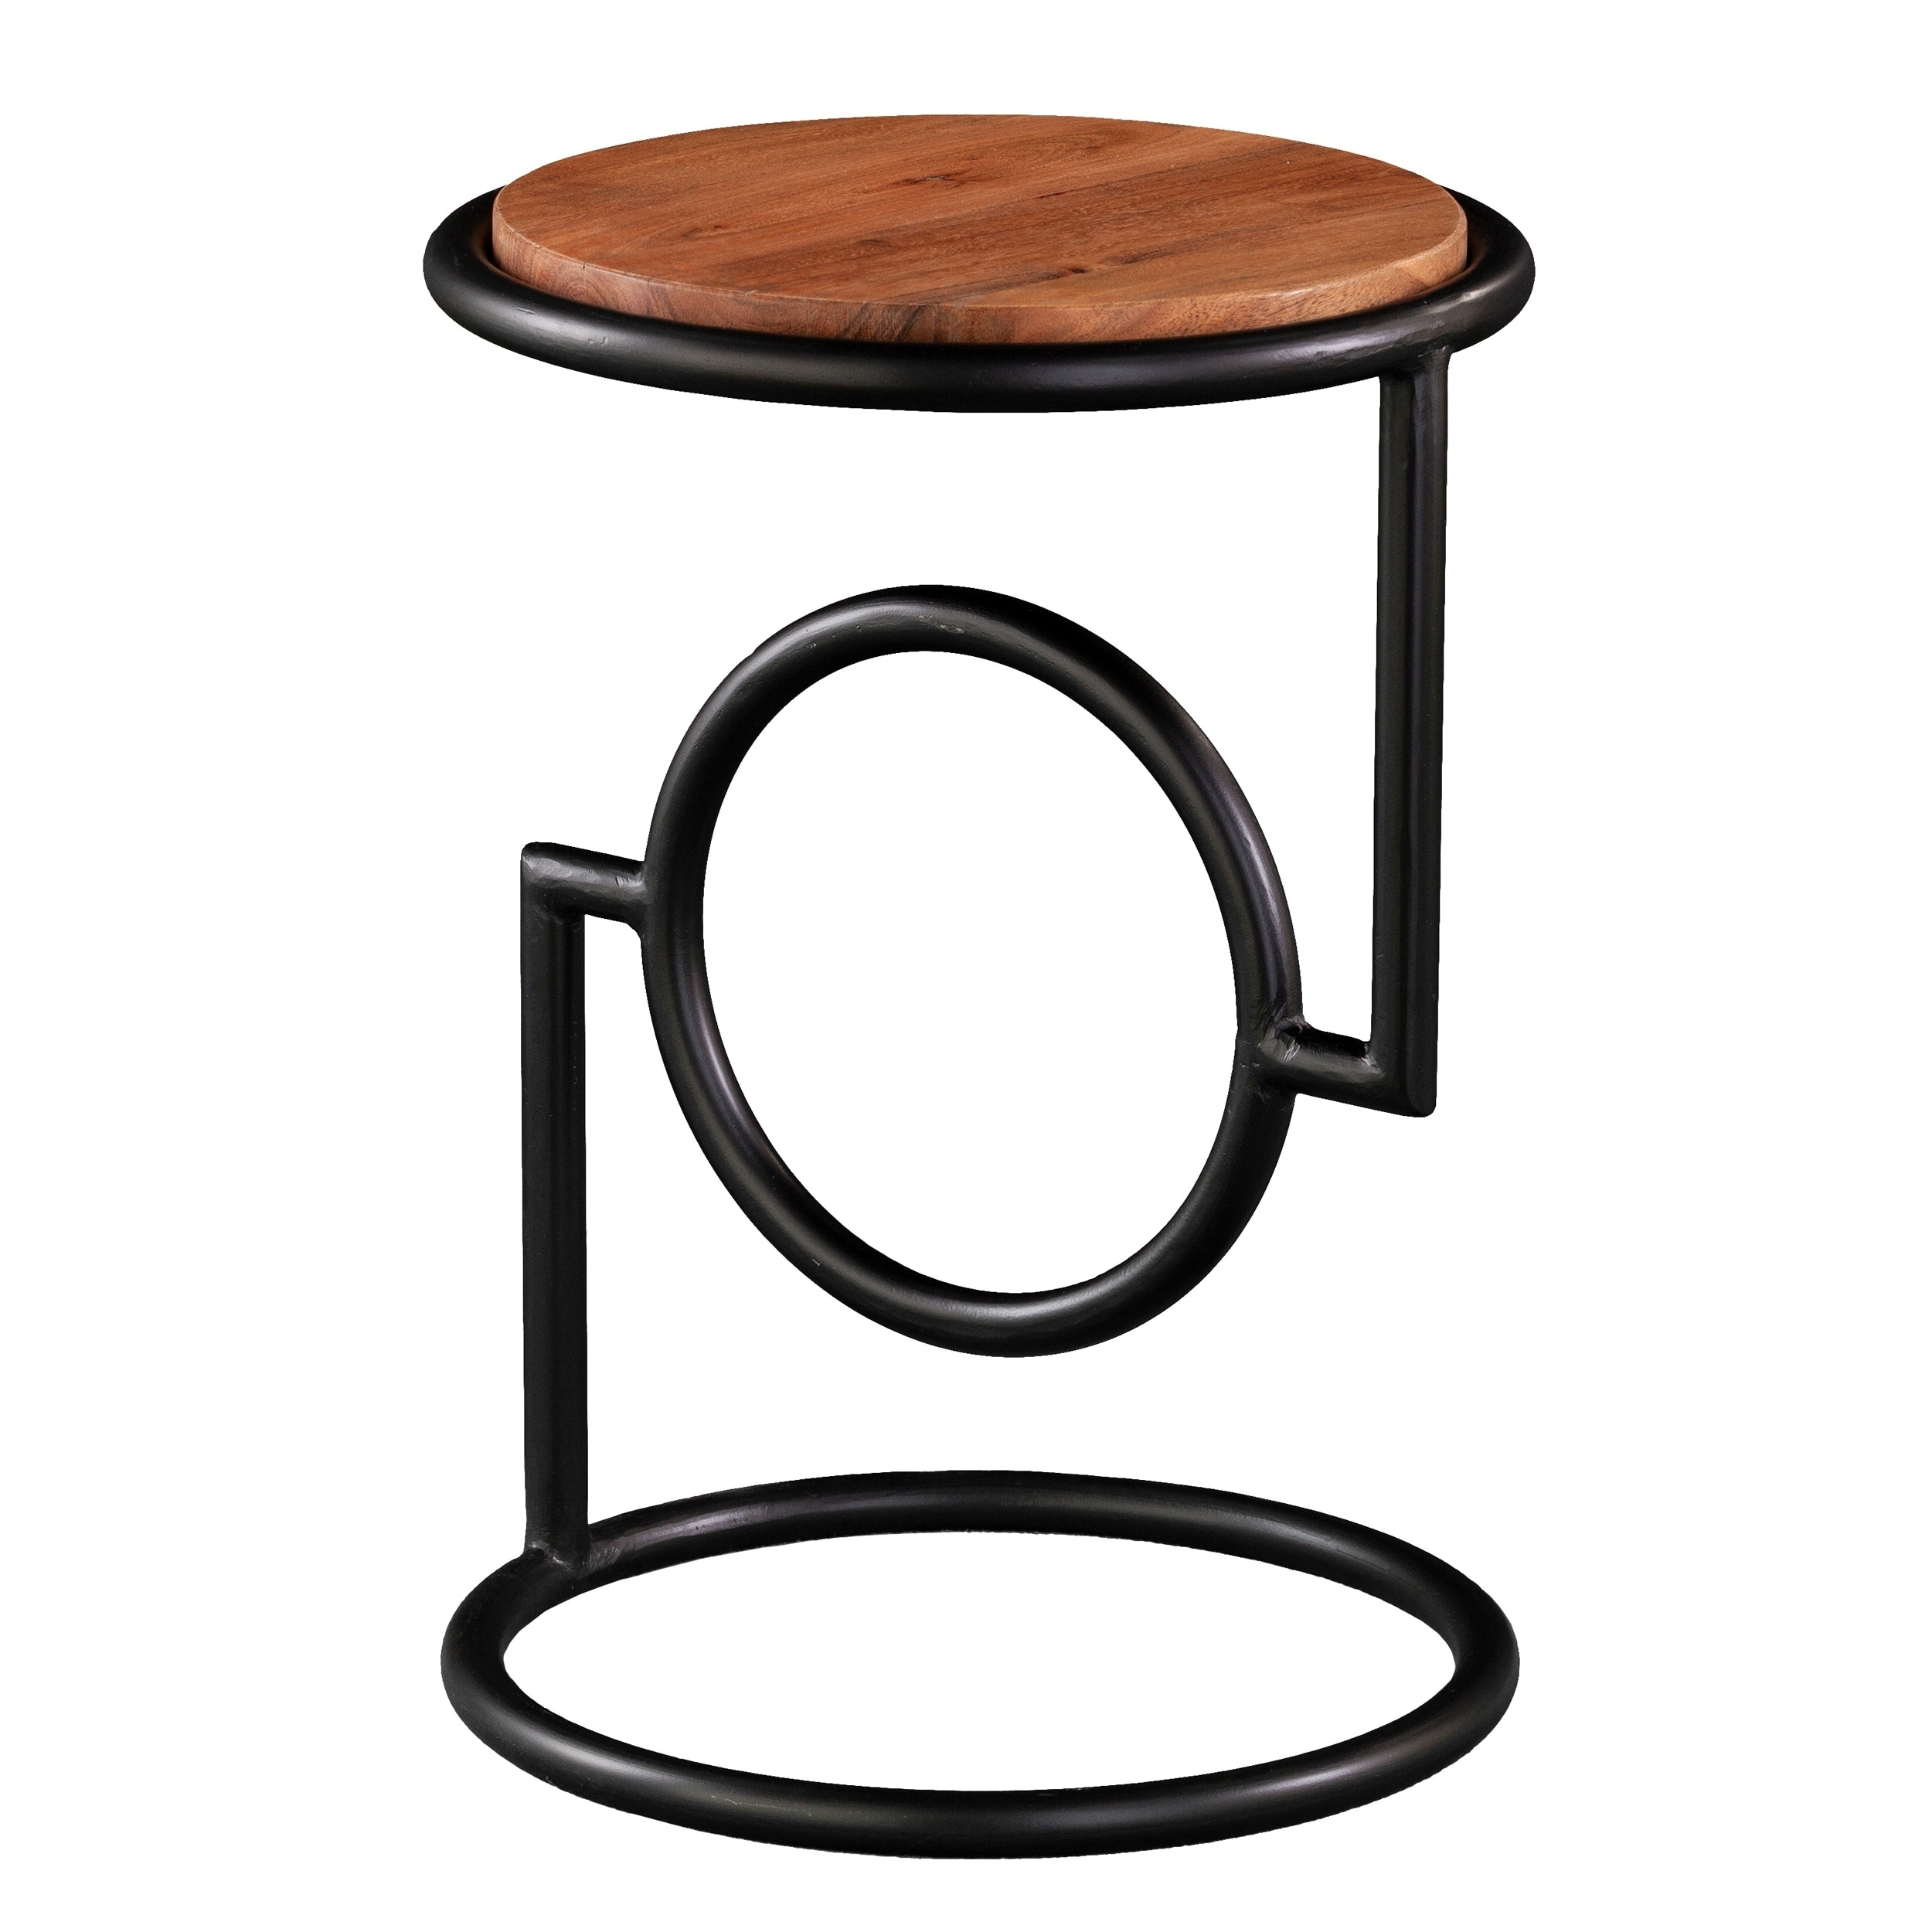 harper blvd bera round accent table mango wood top and metal free shipping today quilted runners placemats patterns extra tall white living room cabinet rustic dining wedding